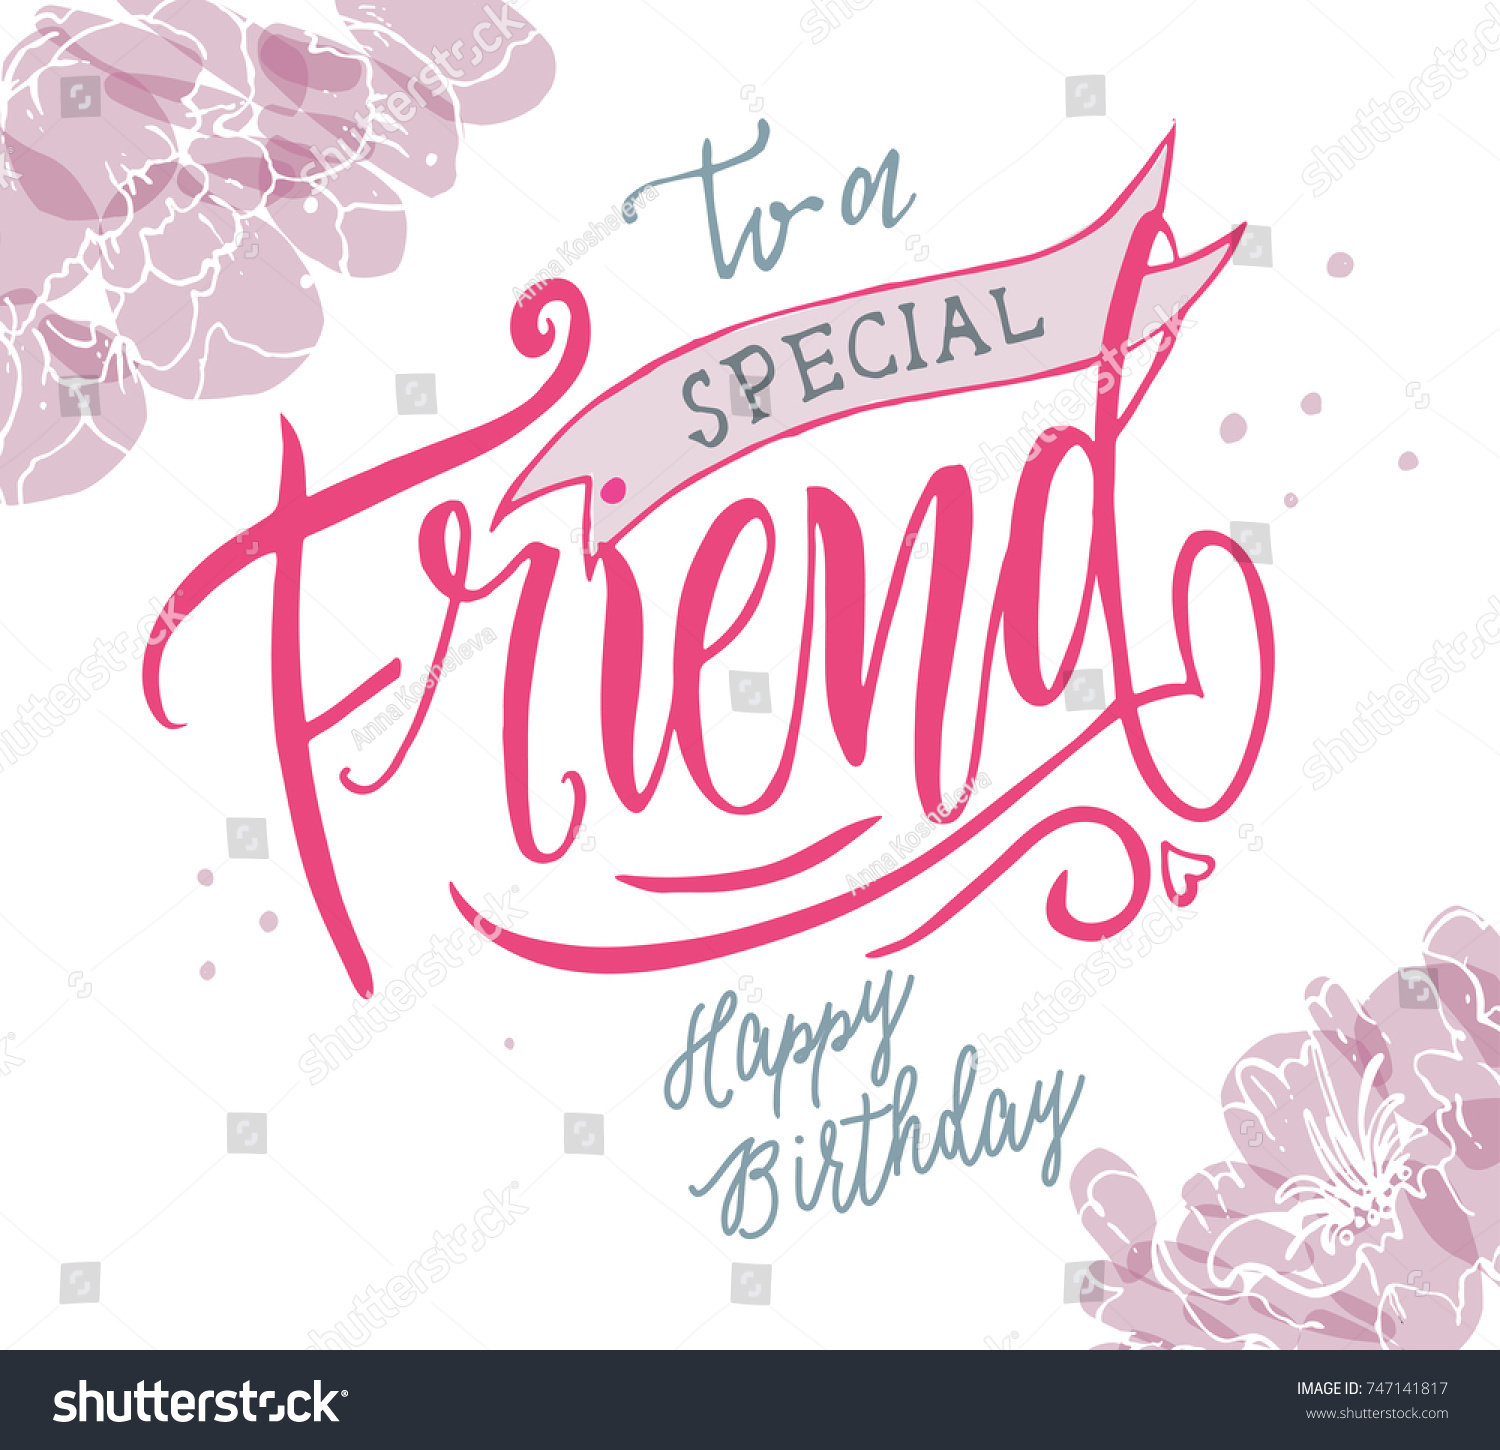 Vector illustration happy birthday special friend stock vector happy birthday to a special friend typography vector design for greeting cards and m4hsunfo